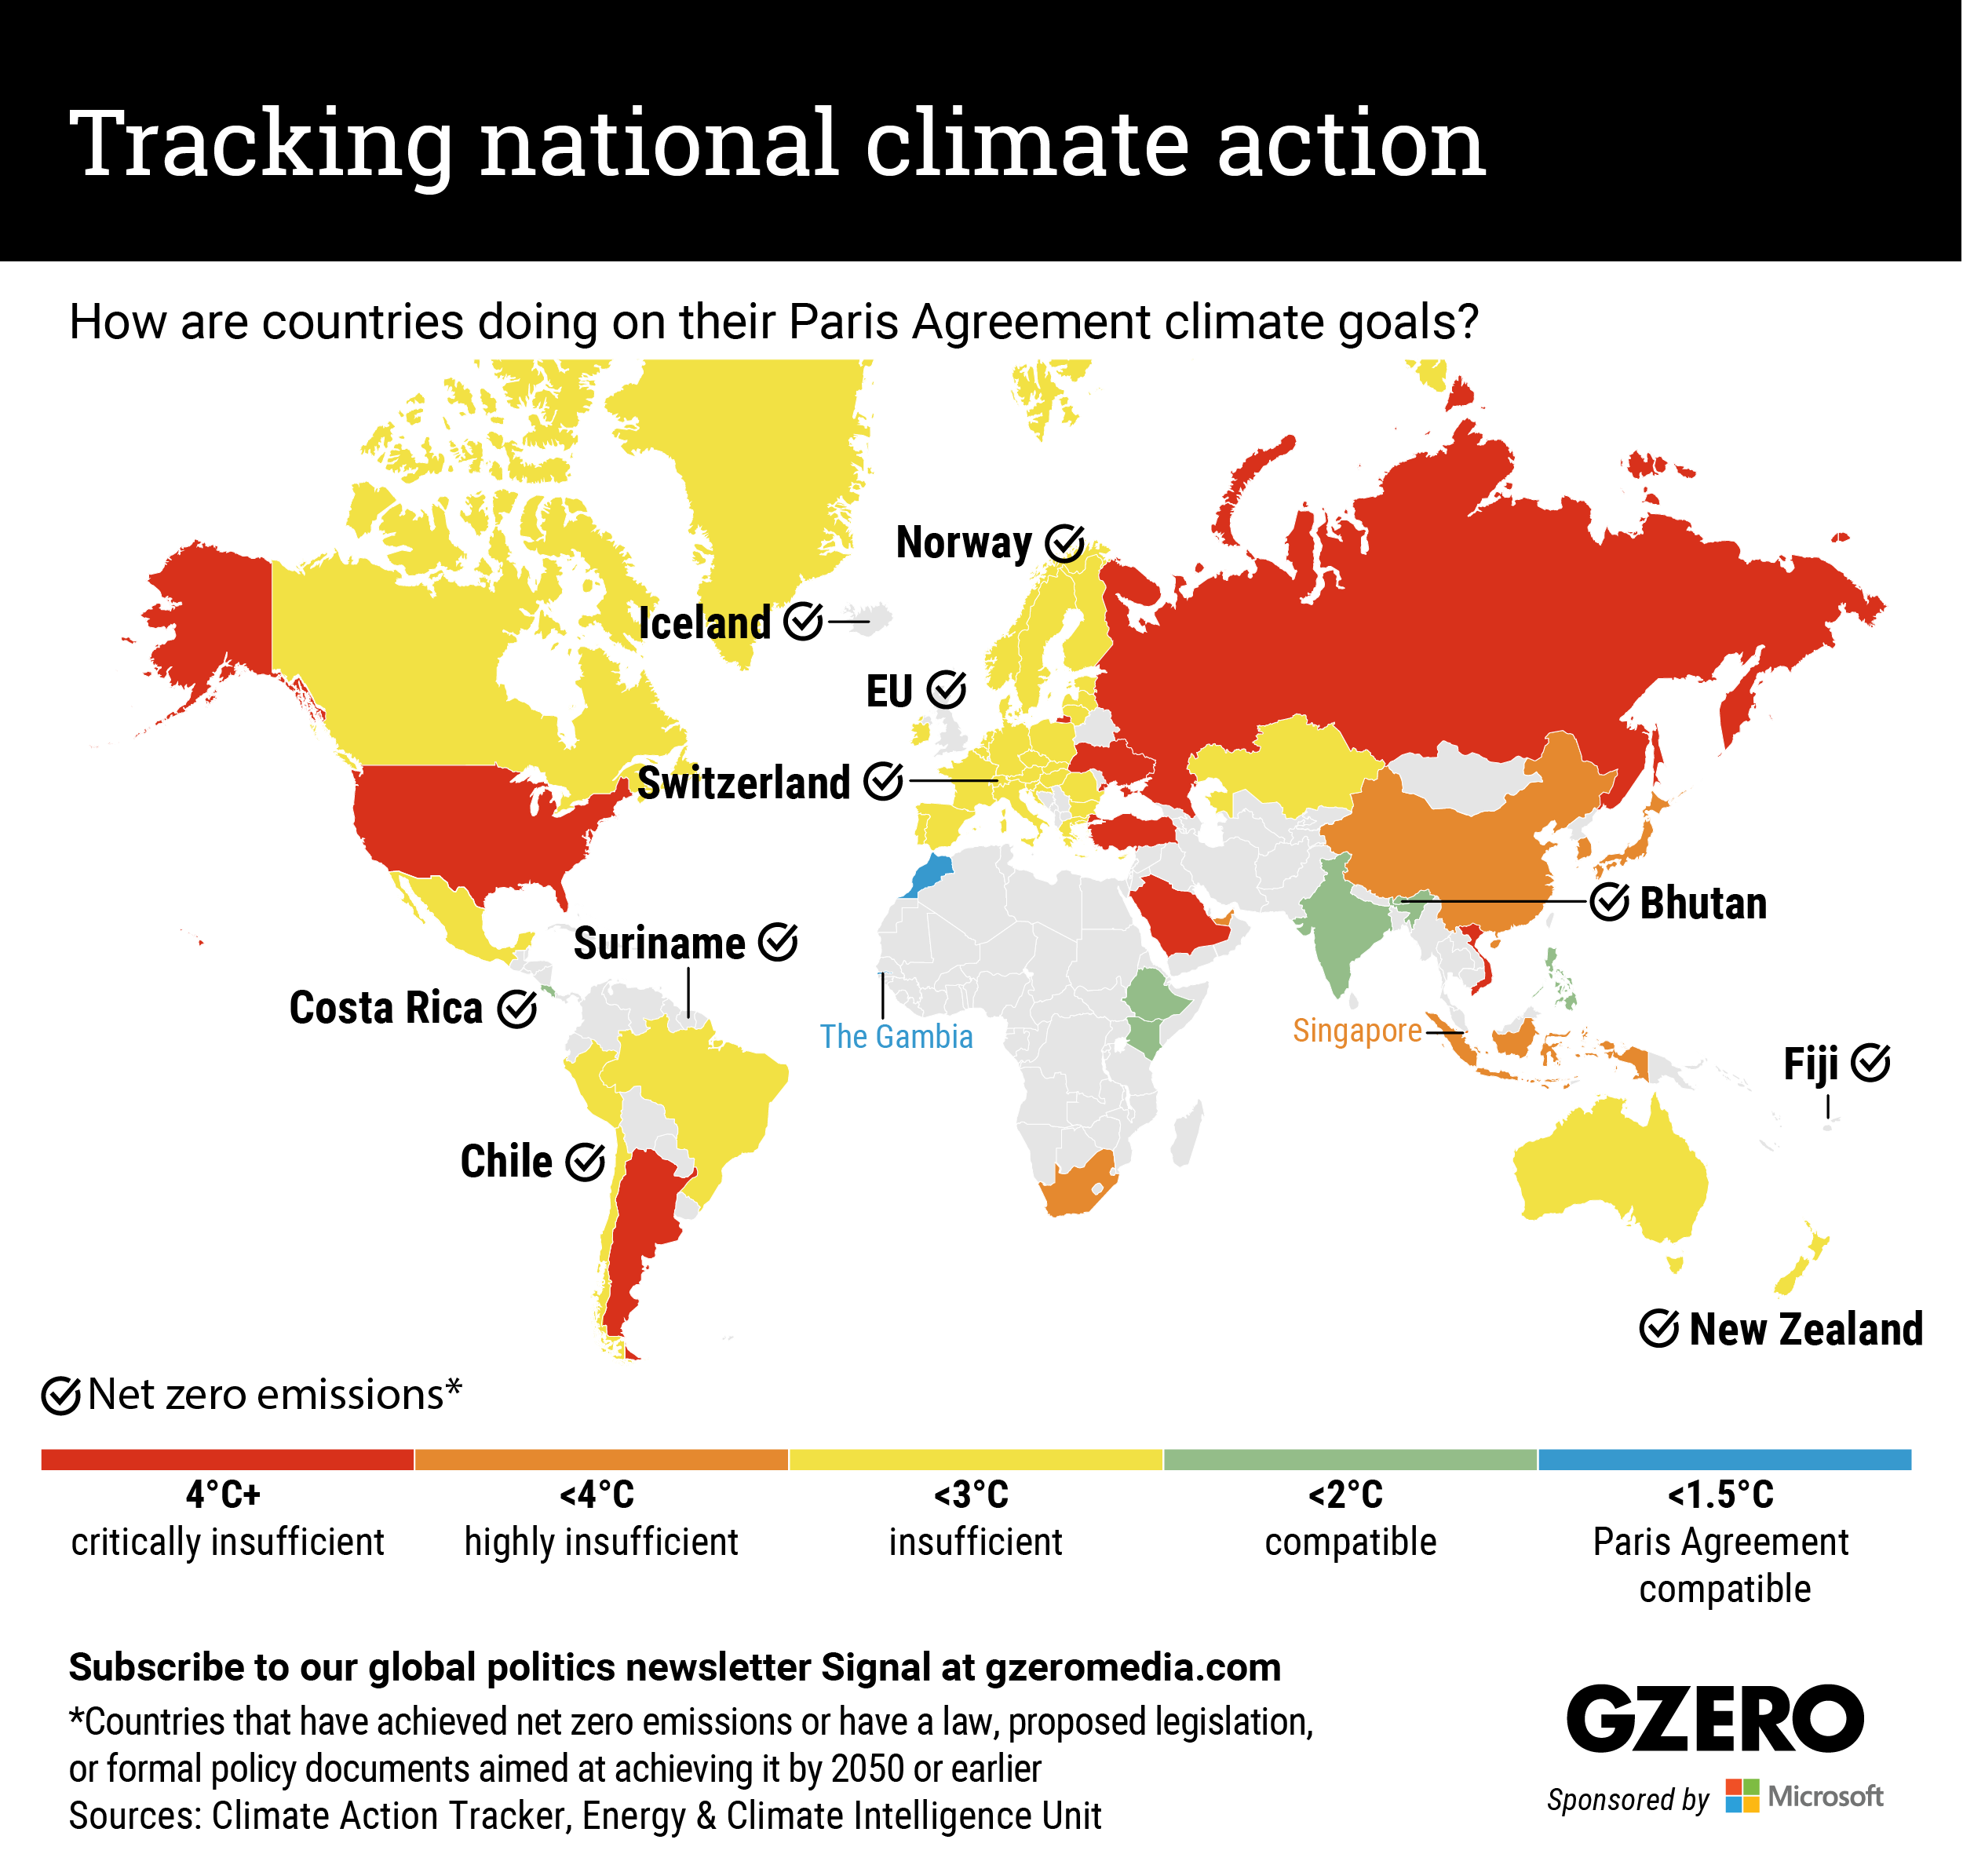 Tracking national climate action: How are countries doing on their Paris Agreement goals?